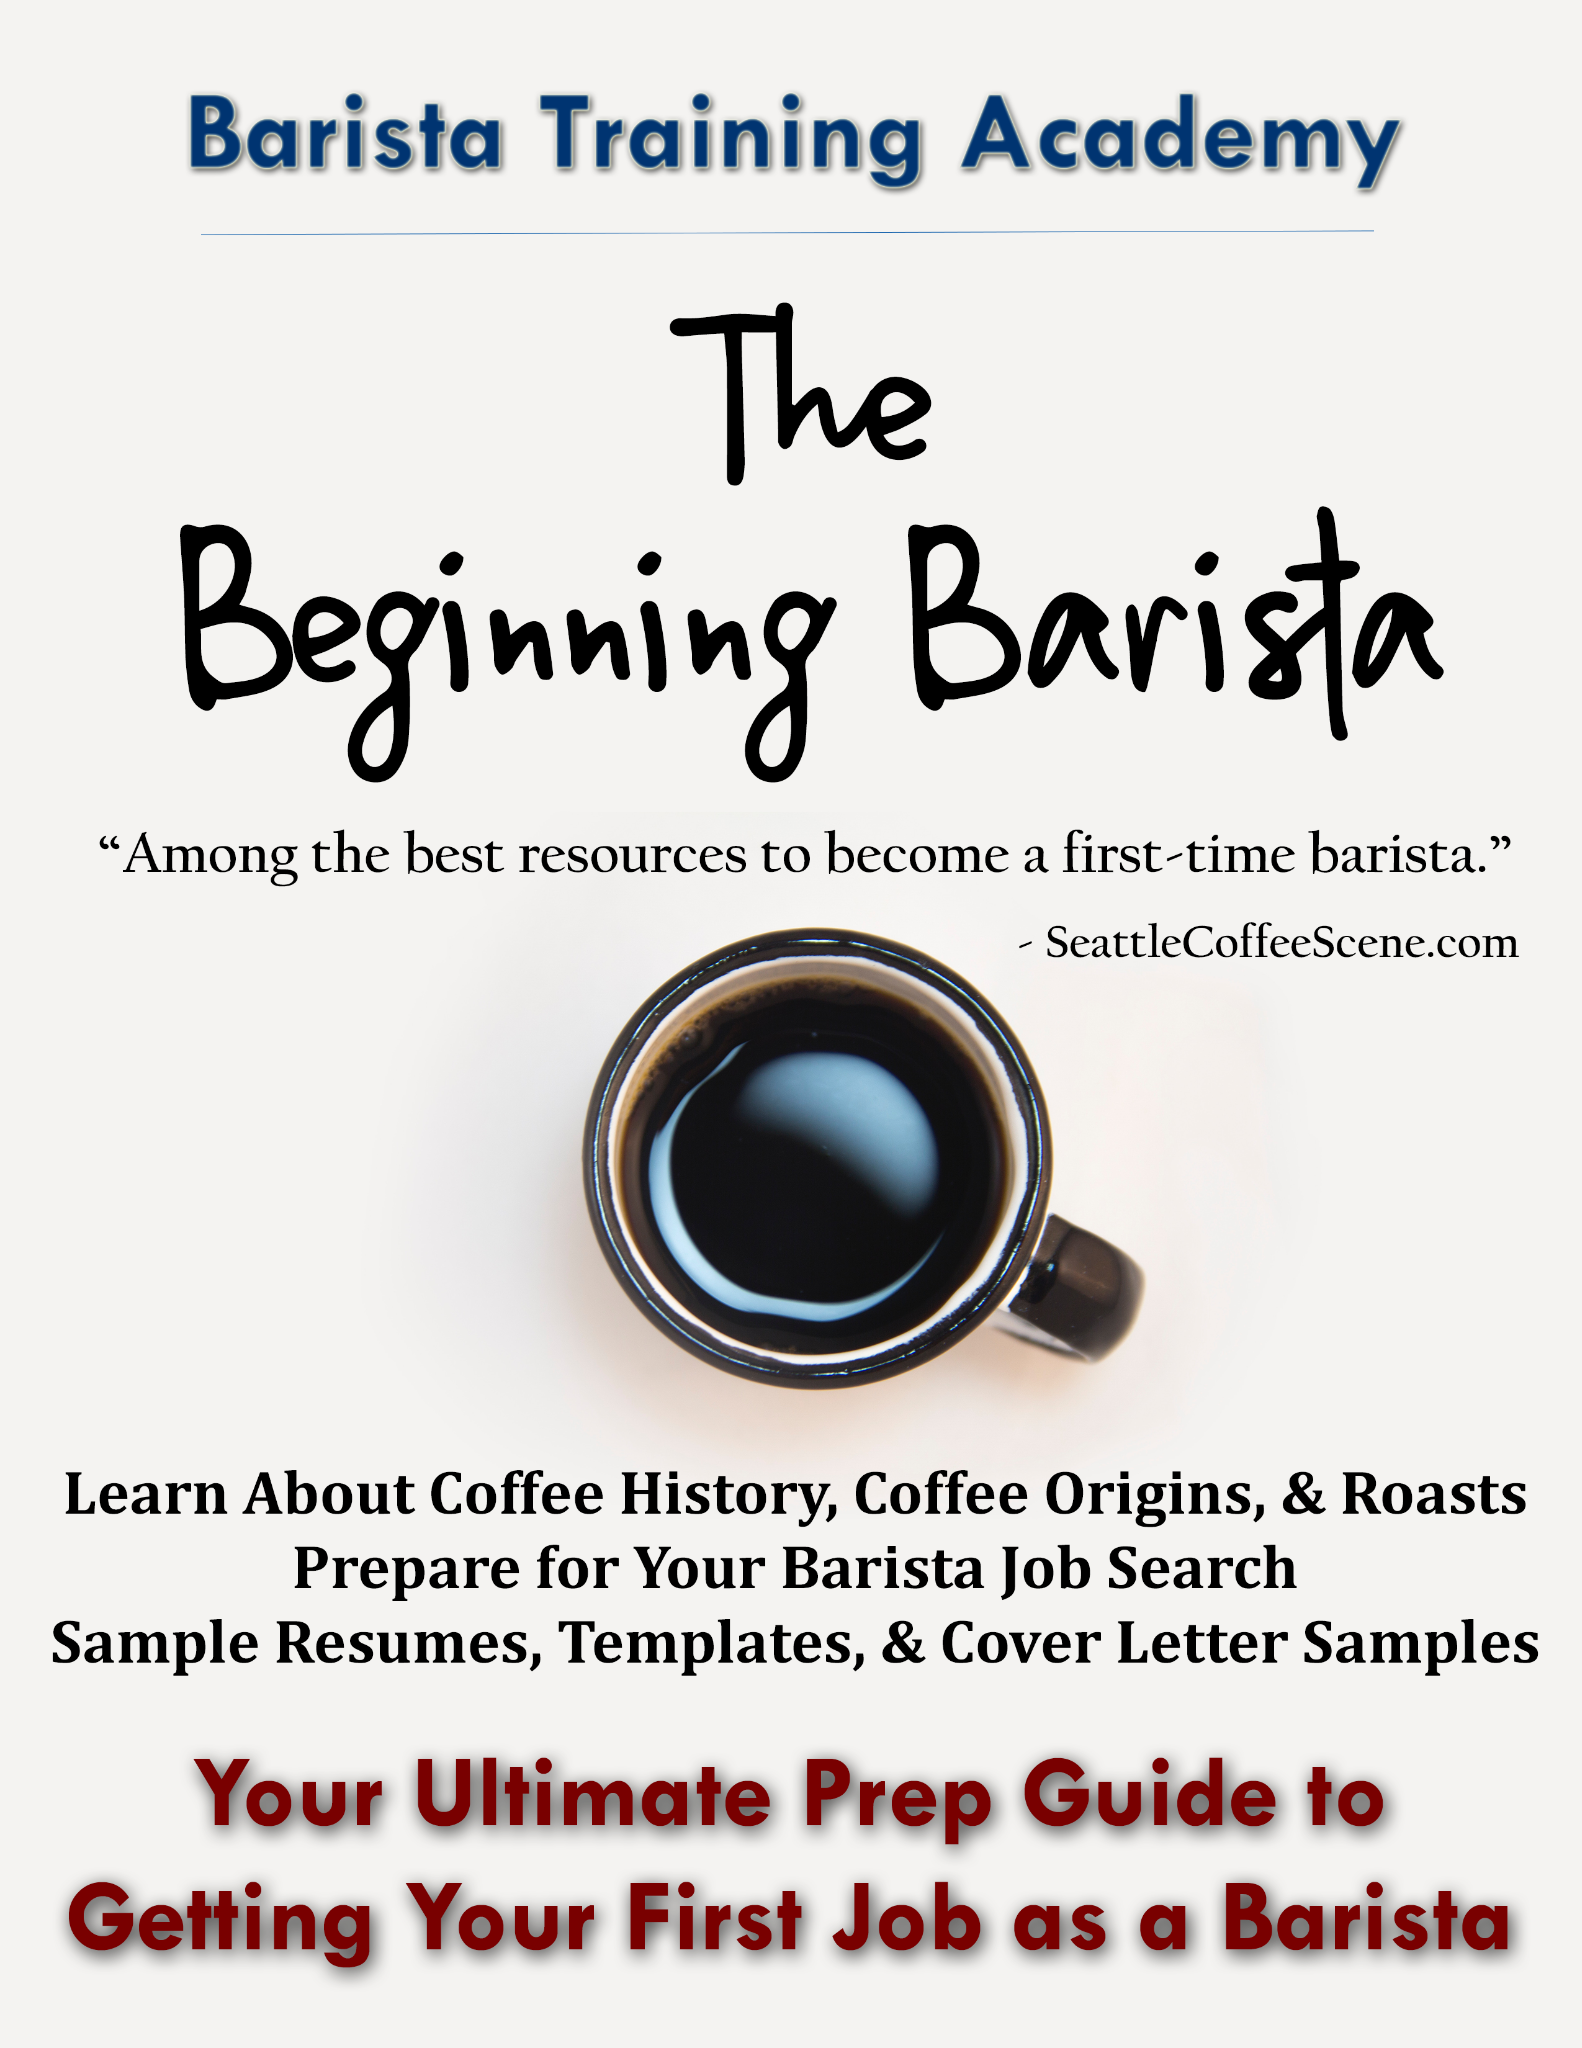 How To Become A Successful Barista With No Experience